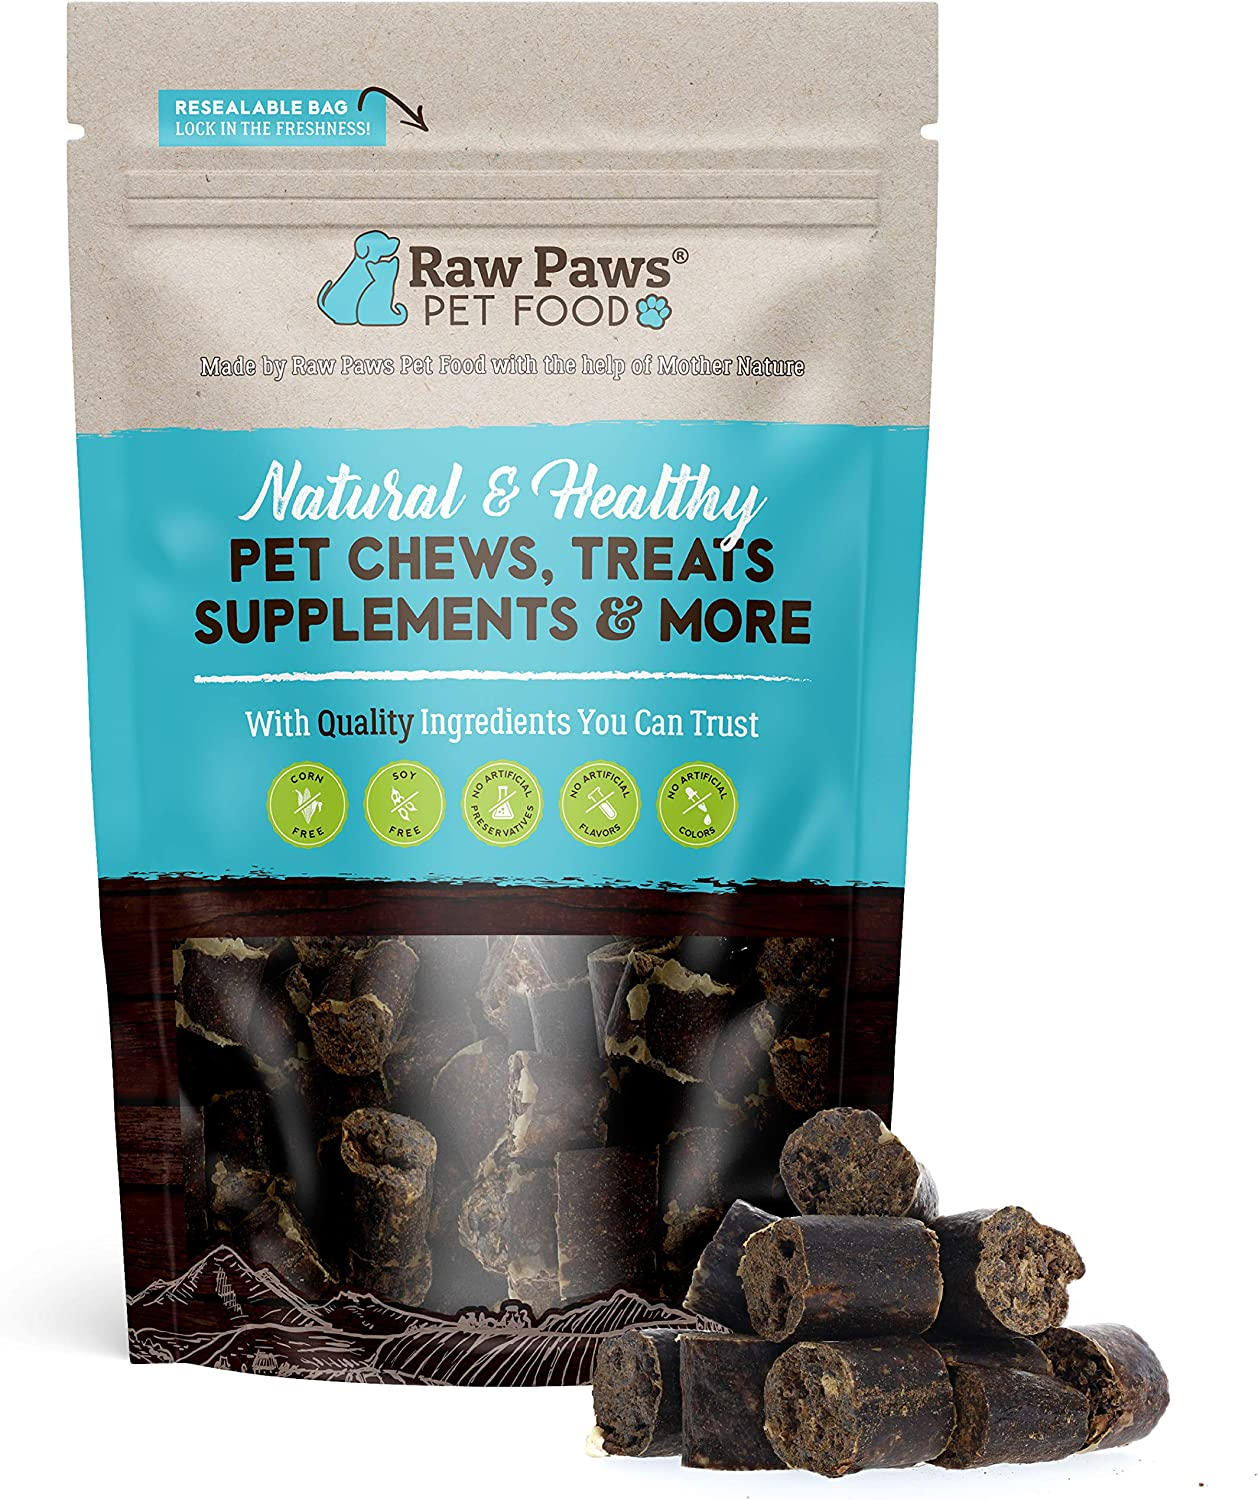 Raw Paws Grain-Free Sausage Beef Challenge the lowest price Dog Smal Dogs for Treats Long Beach Mall Large